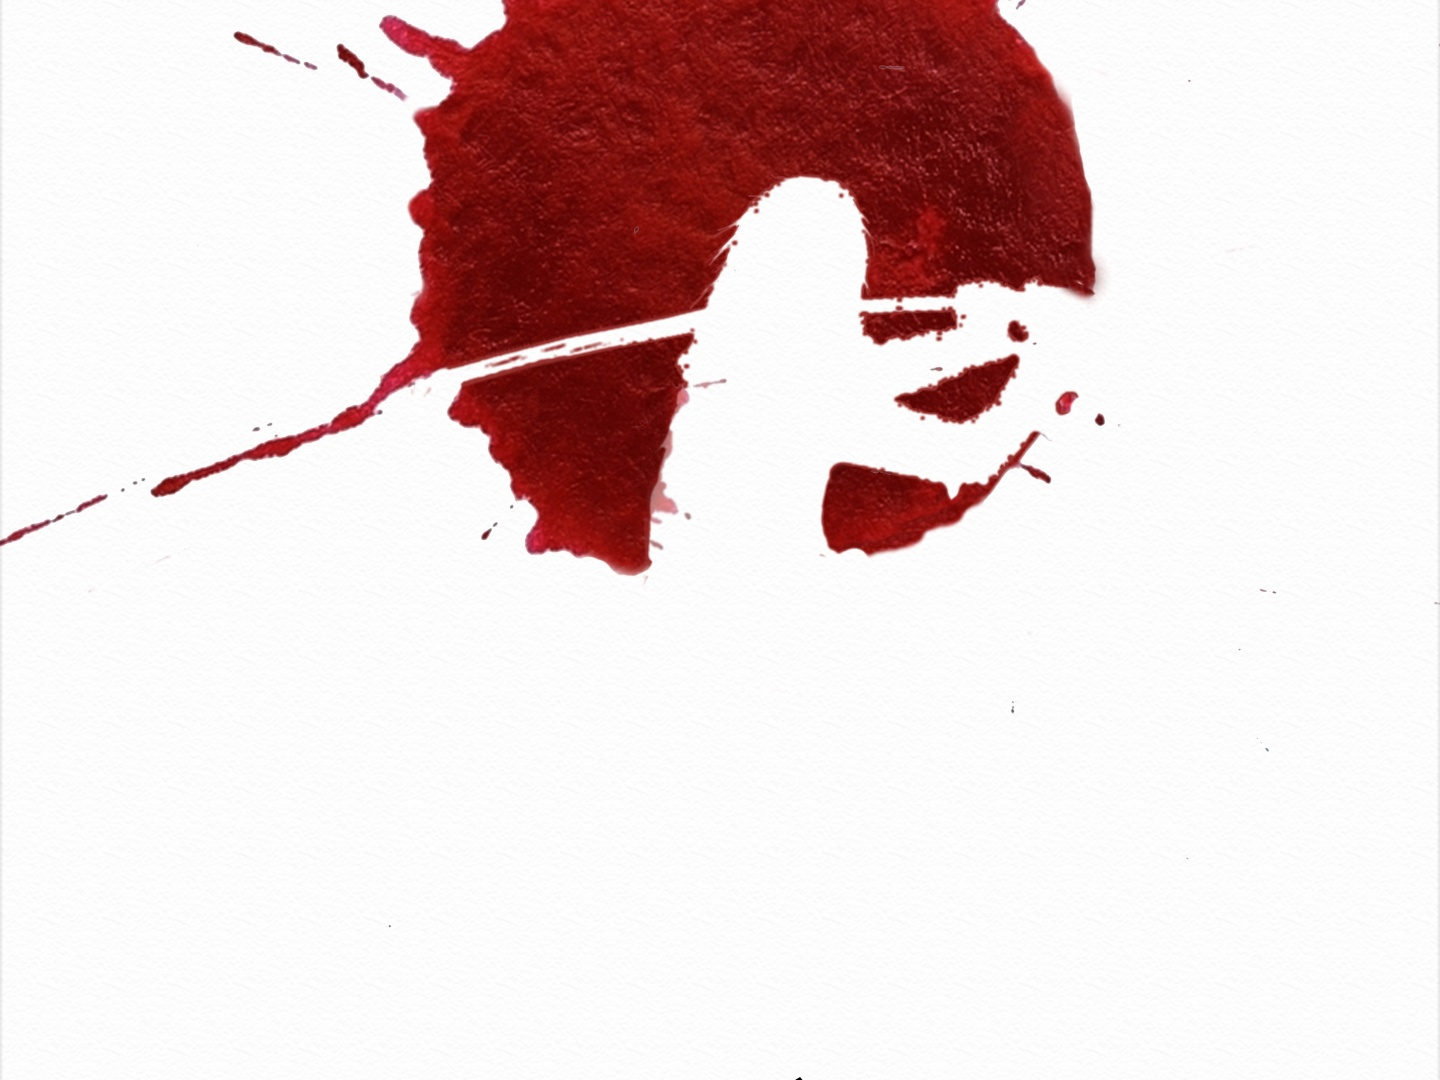 Blood Splatter Thumbnail